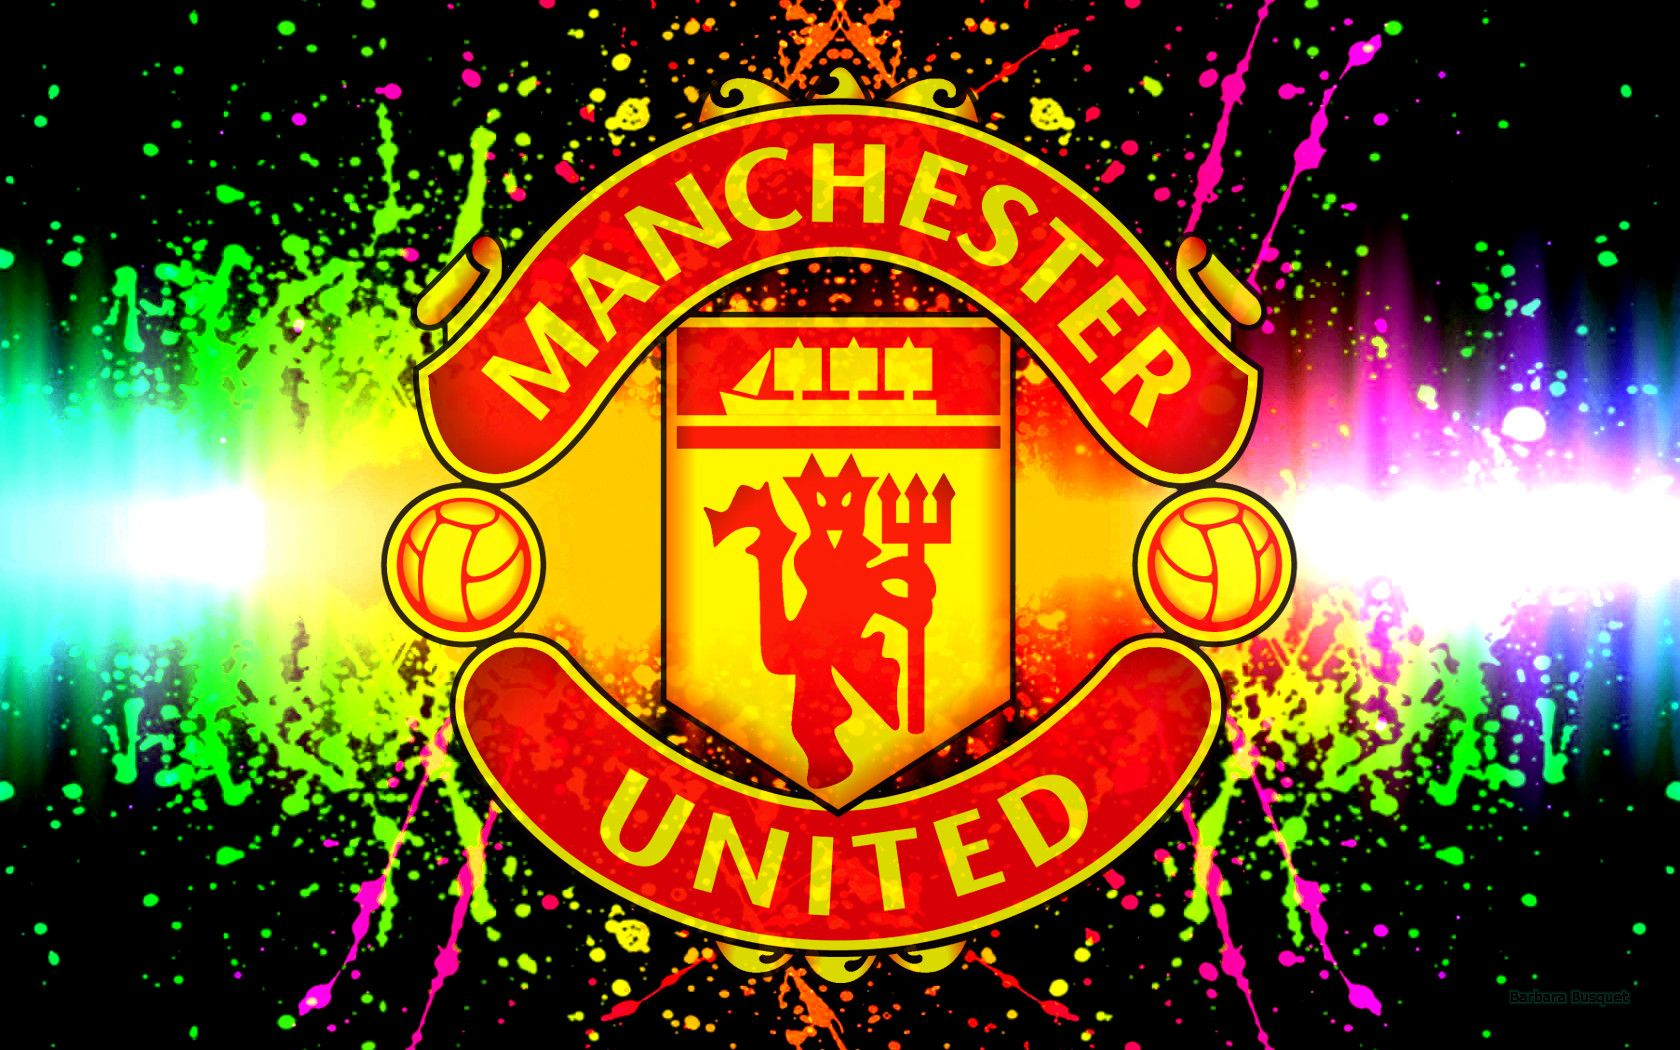 Manchester united wallpapers x hd wallpapers pinterest manchester united wallpapers x voltagebd Images